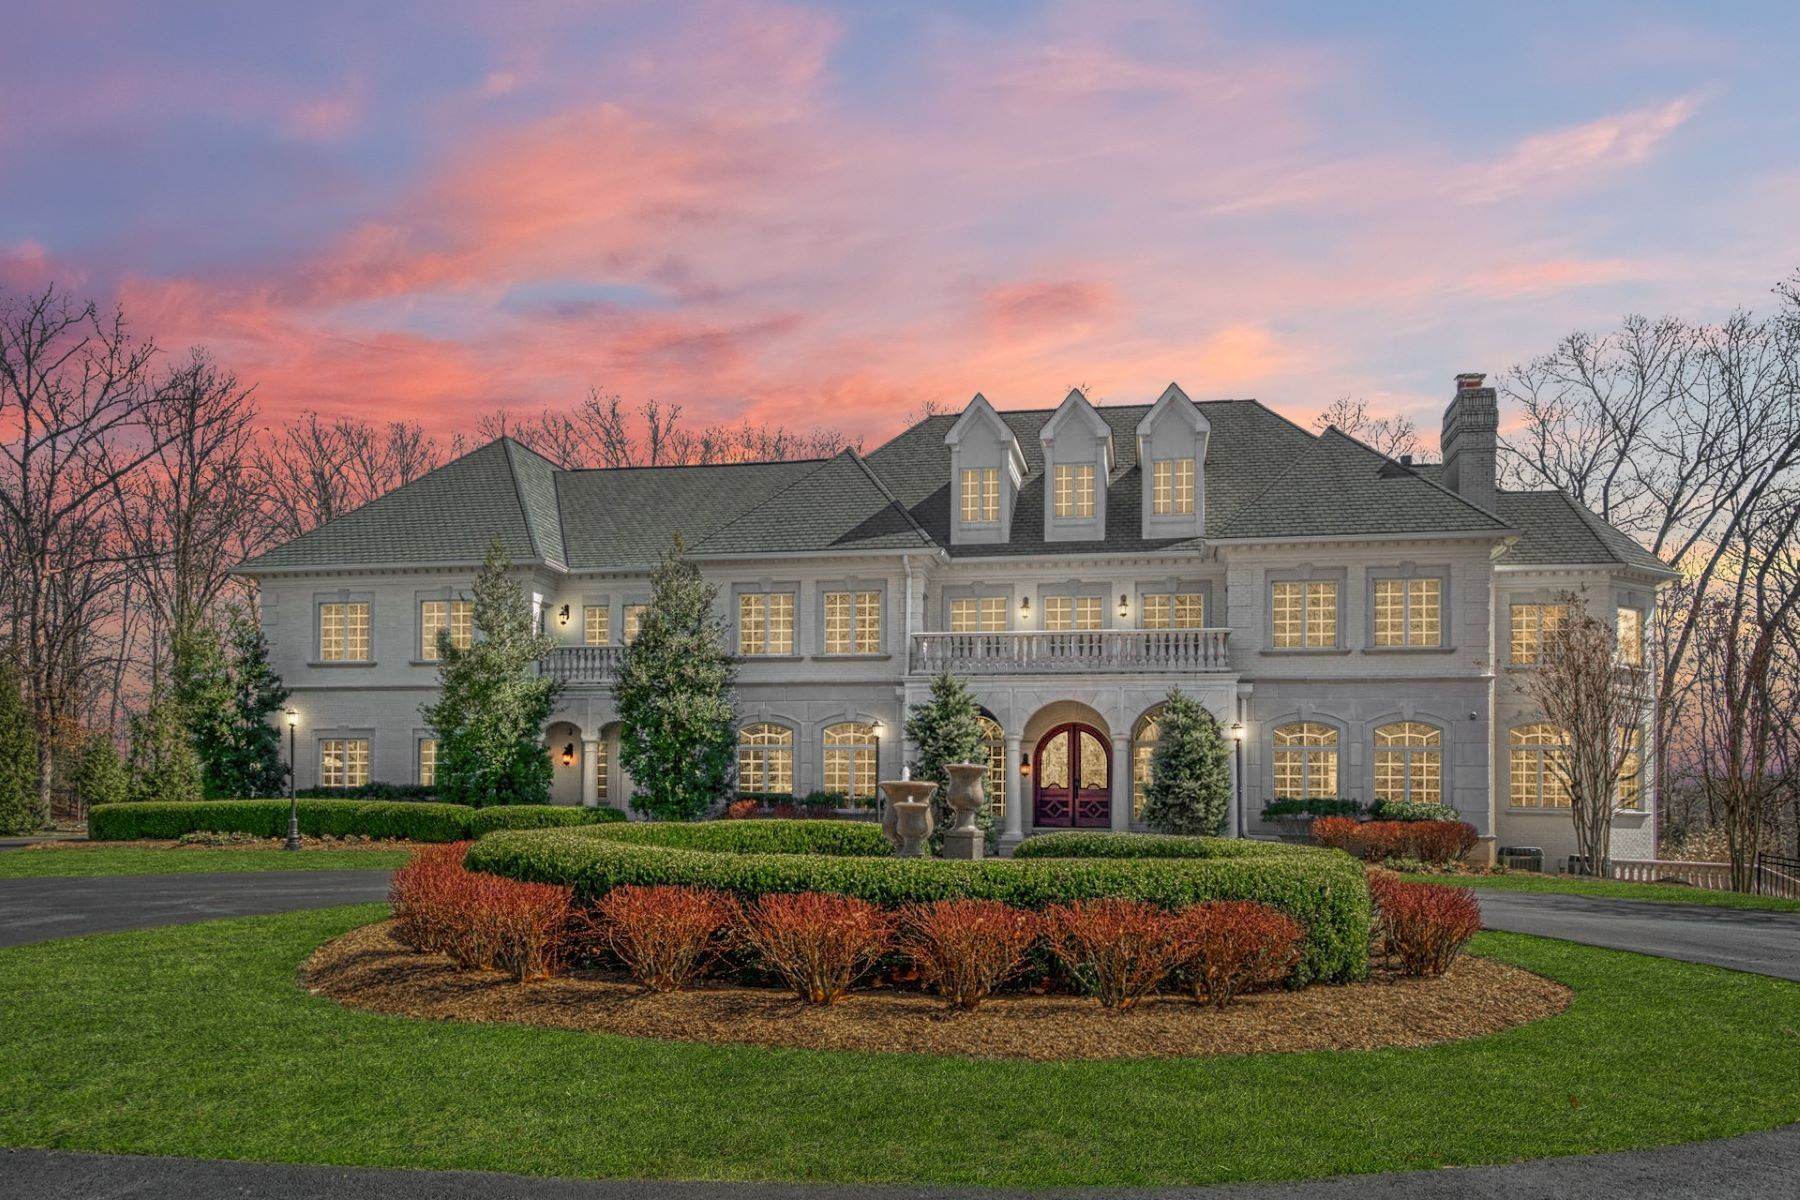 Single Family Homes for Sale at Dazzling French Eclectic Estate 18688 Riverlook Court, Leesburg, Virginia, 20176 United States